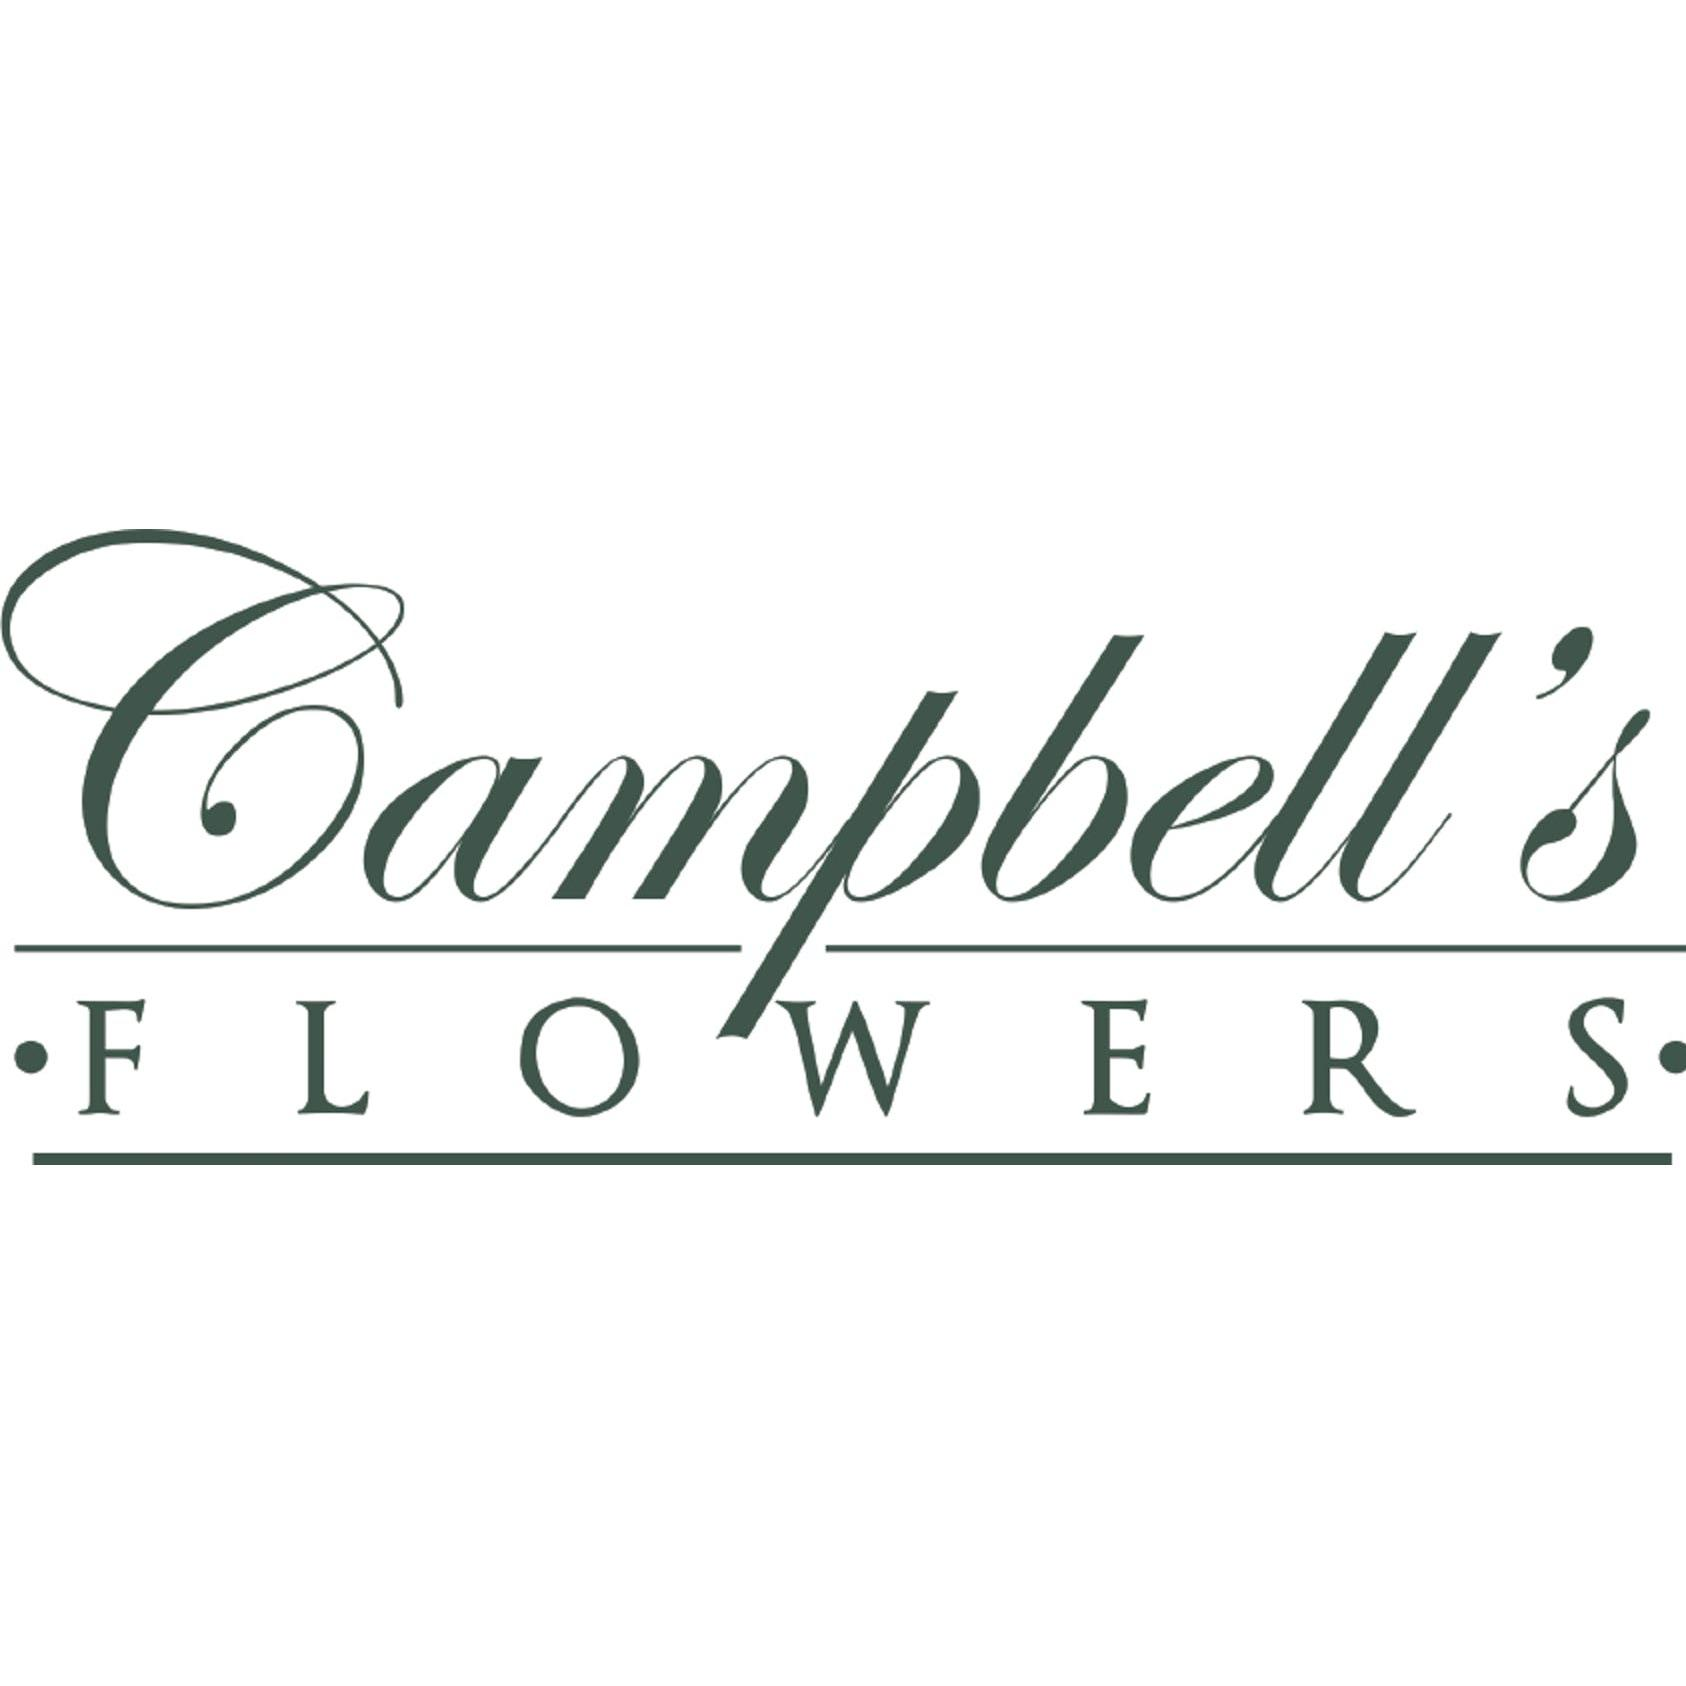 Campbell's Flowers & Greenhouses